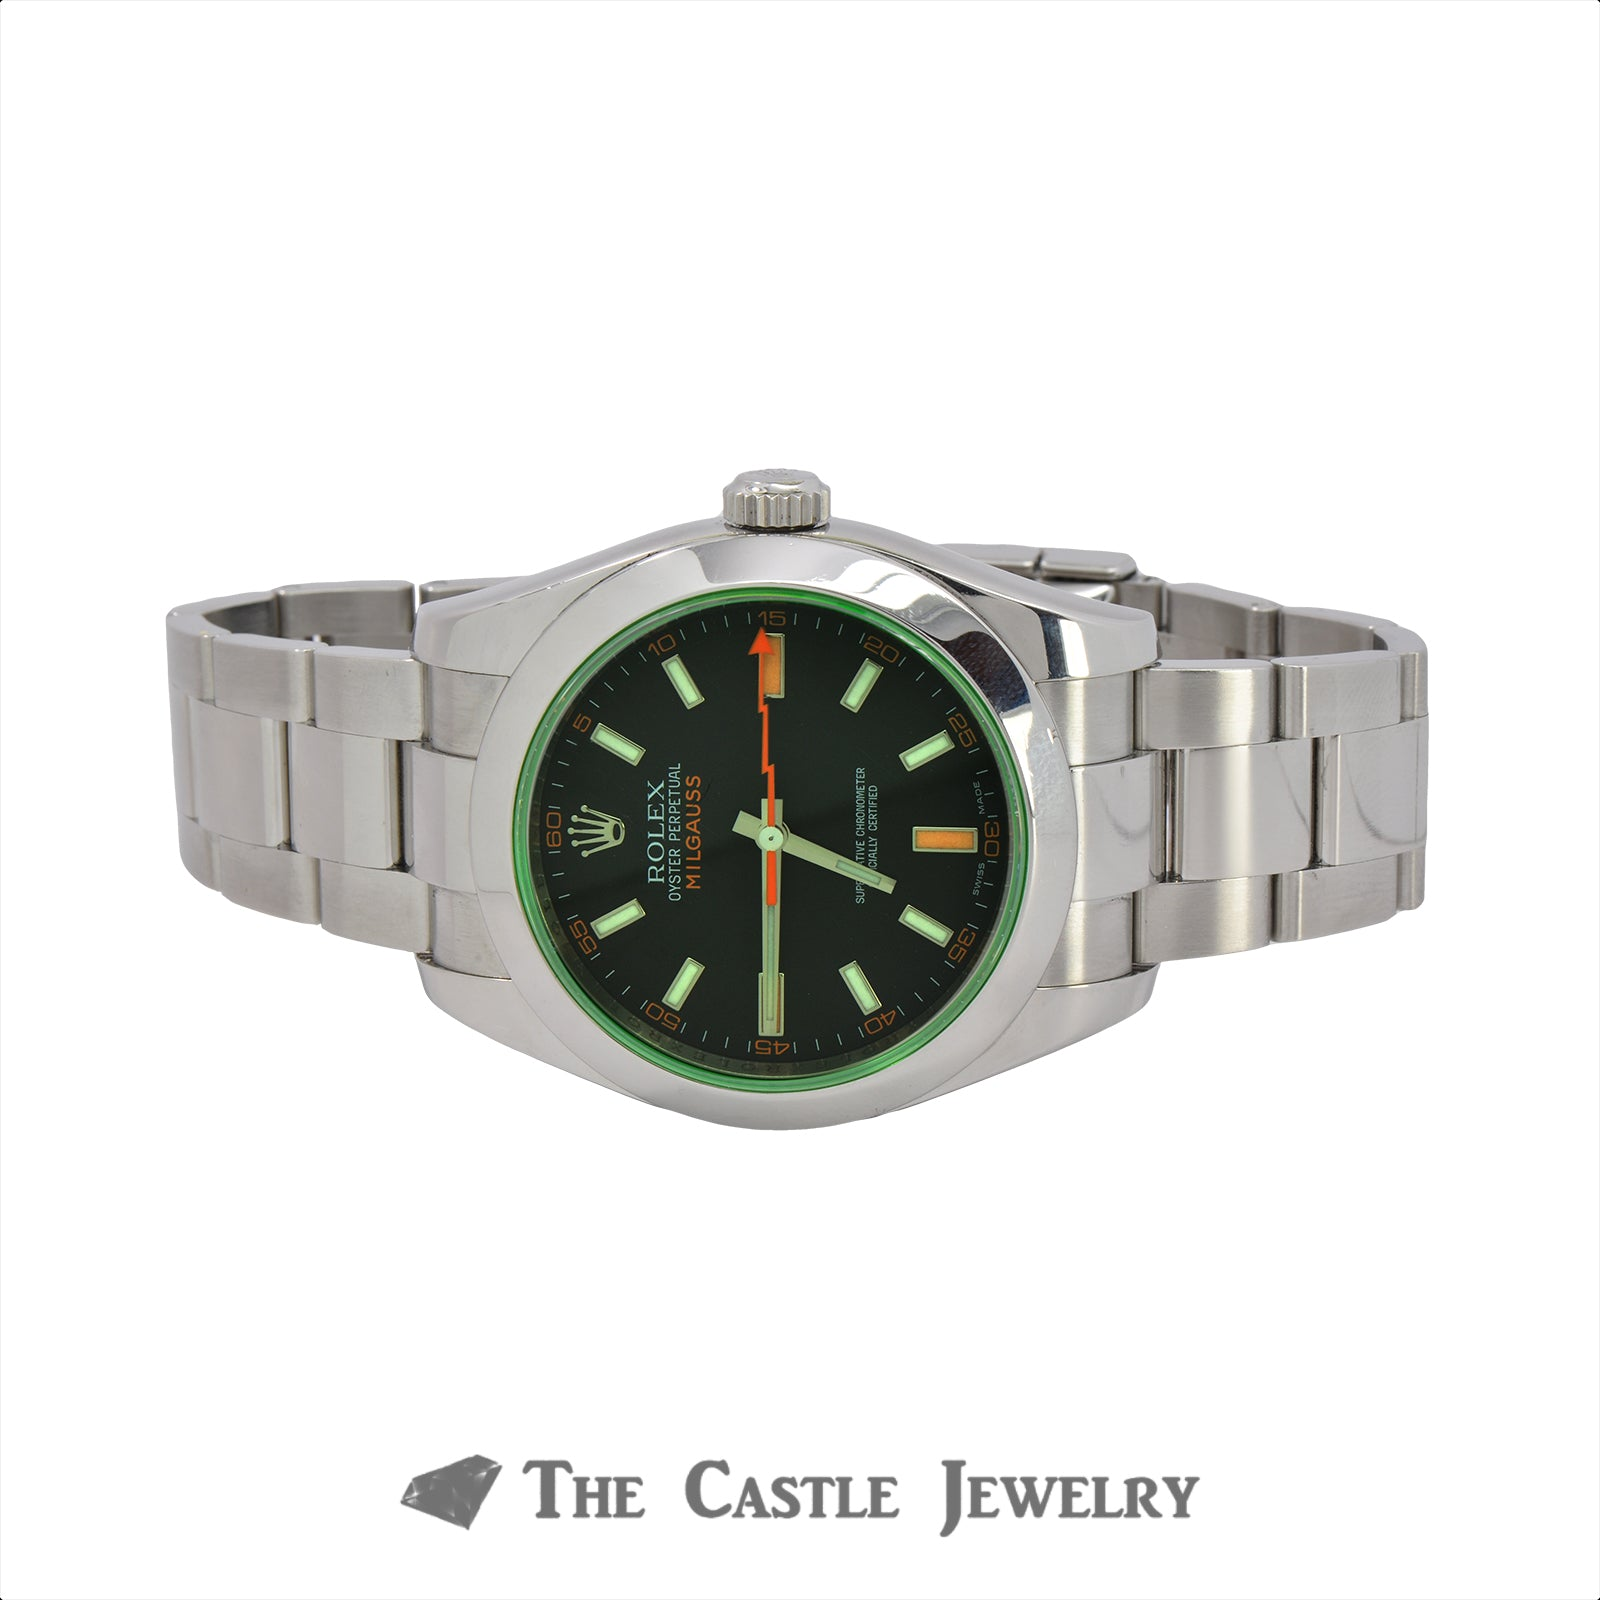 Rolex Milgauss Black Dial with Green Sapphire Crystal 116400GV-4